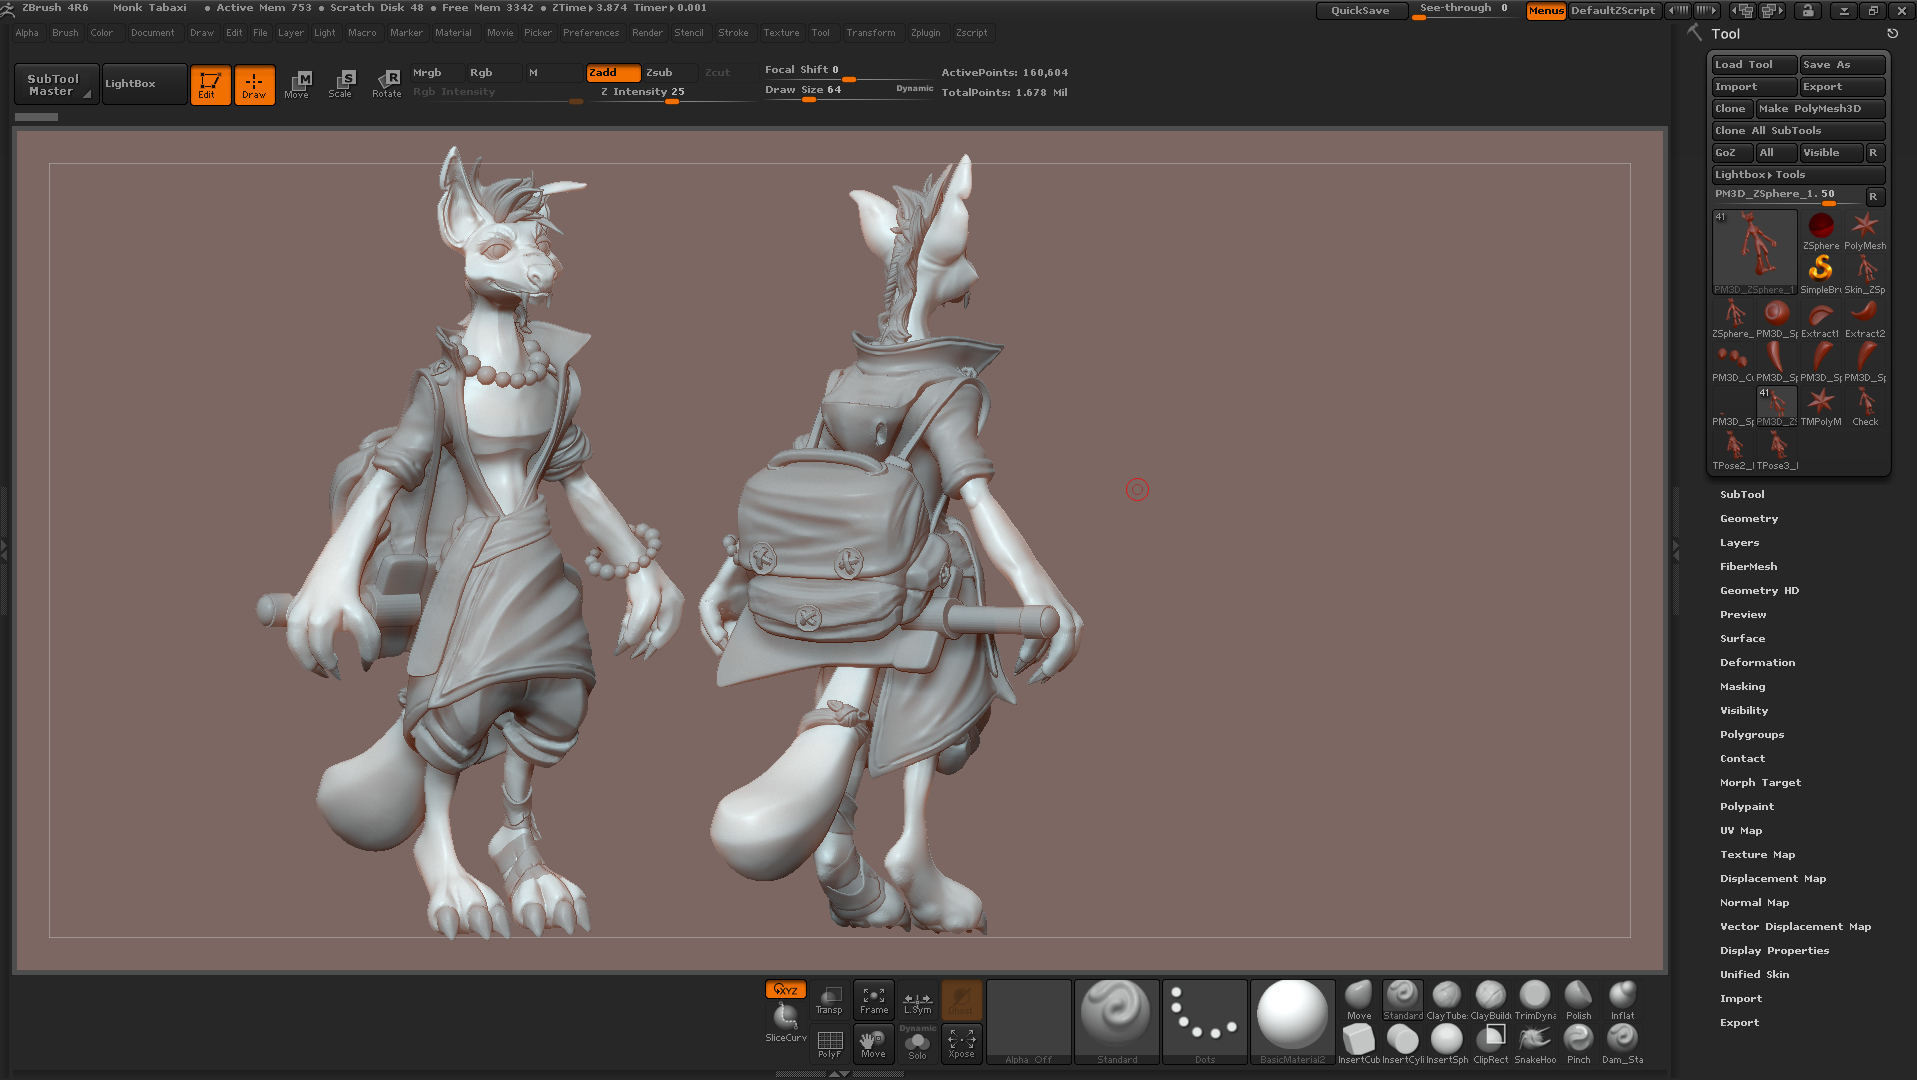 3d Tabaxi Monk Dnd Char Wips Forums Cubebrush All images must be original content, must include oc or art in the title, and must be accompanied by a description in the comments of at least 400 this is puff puddlepond. 3d tabaxi monk dnd char wips forums